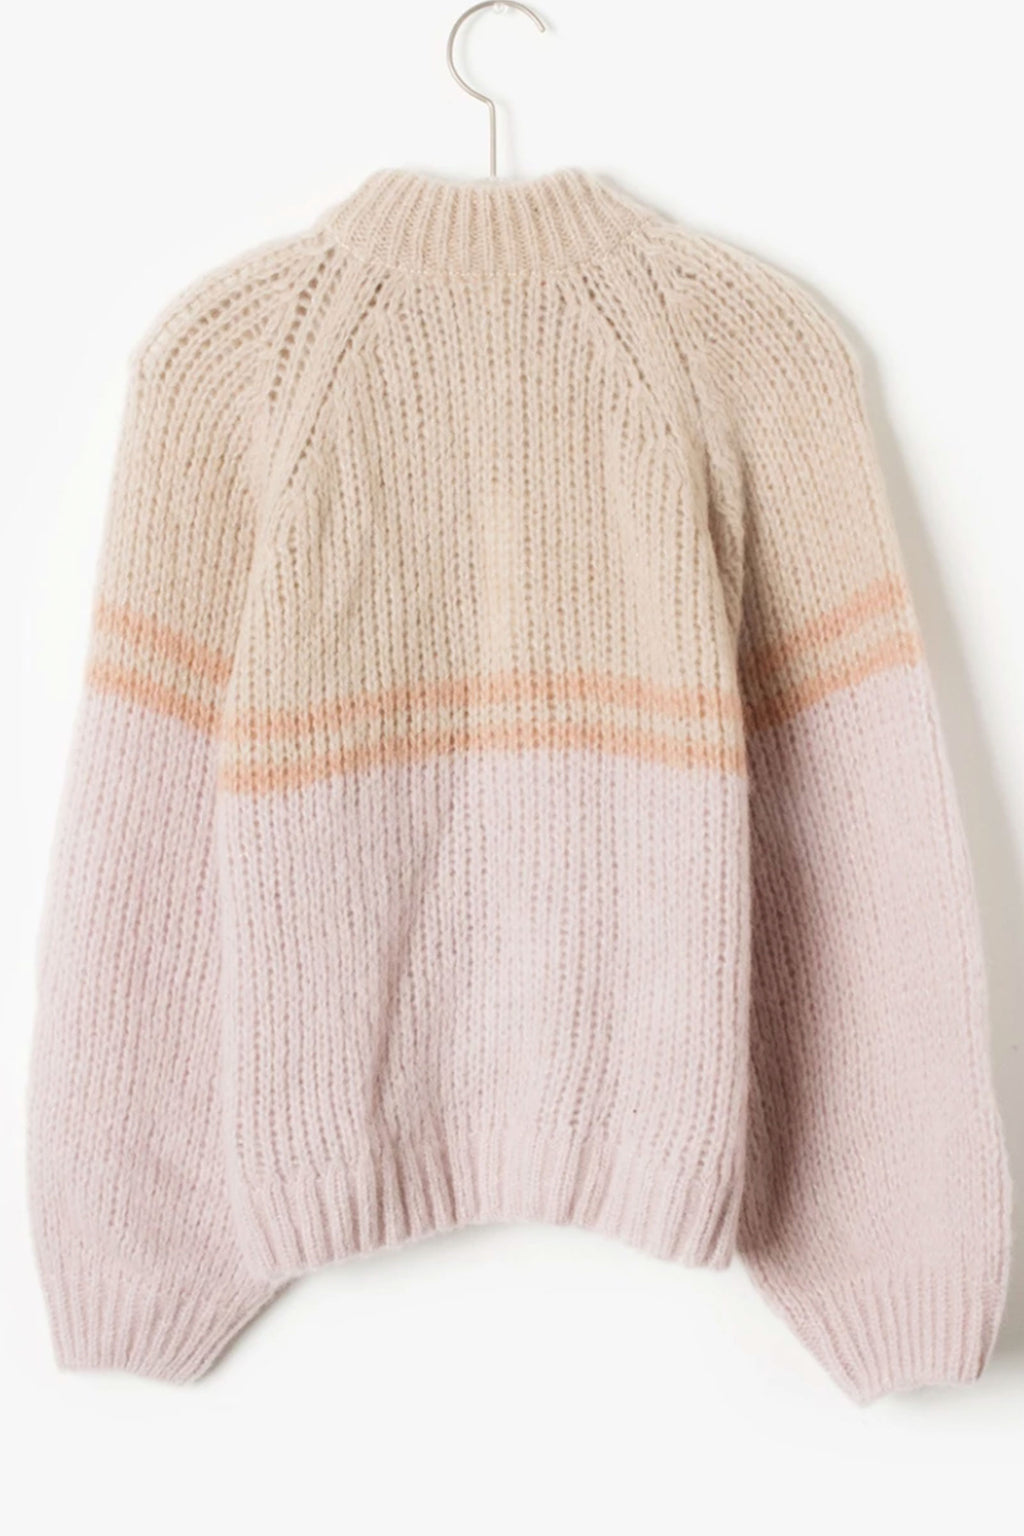 Xirena Lurex Knit Sweater in North Star